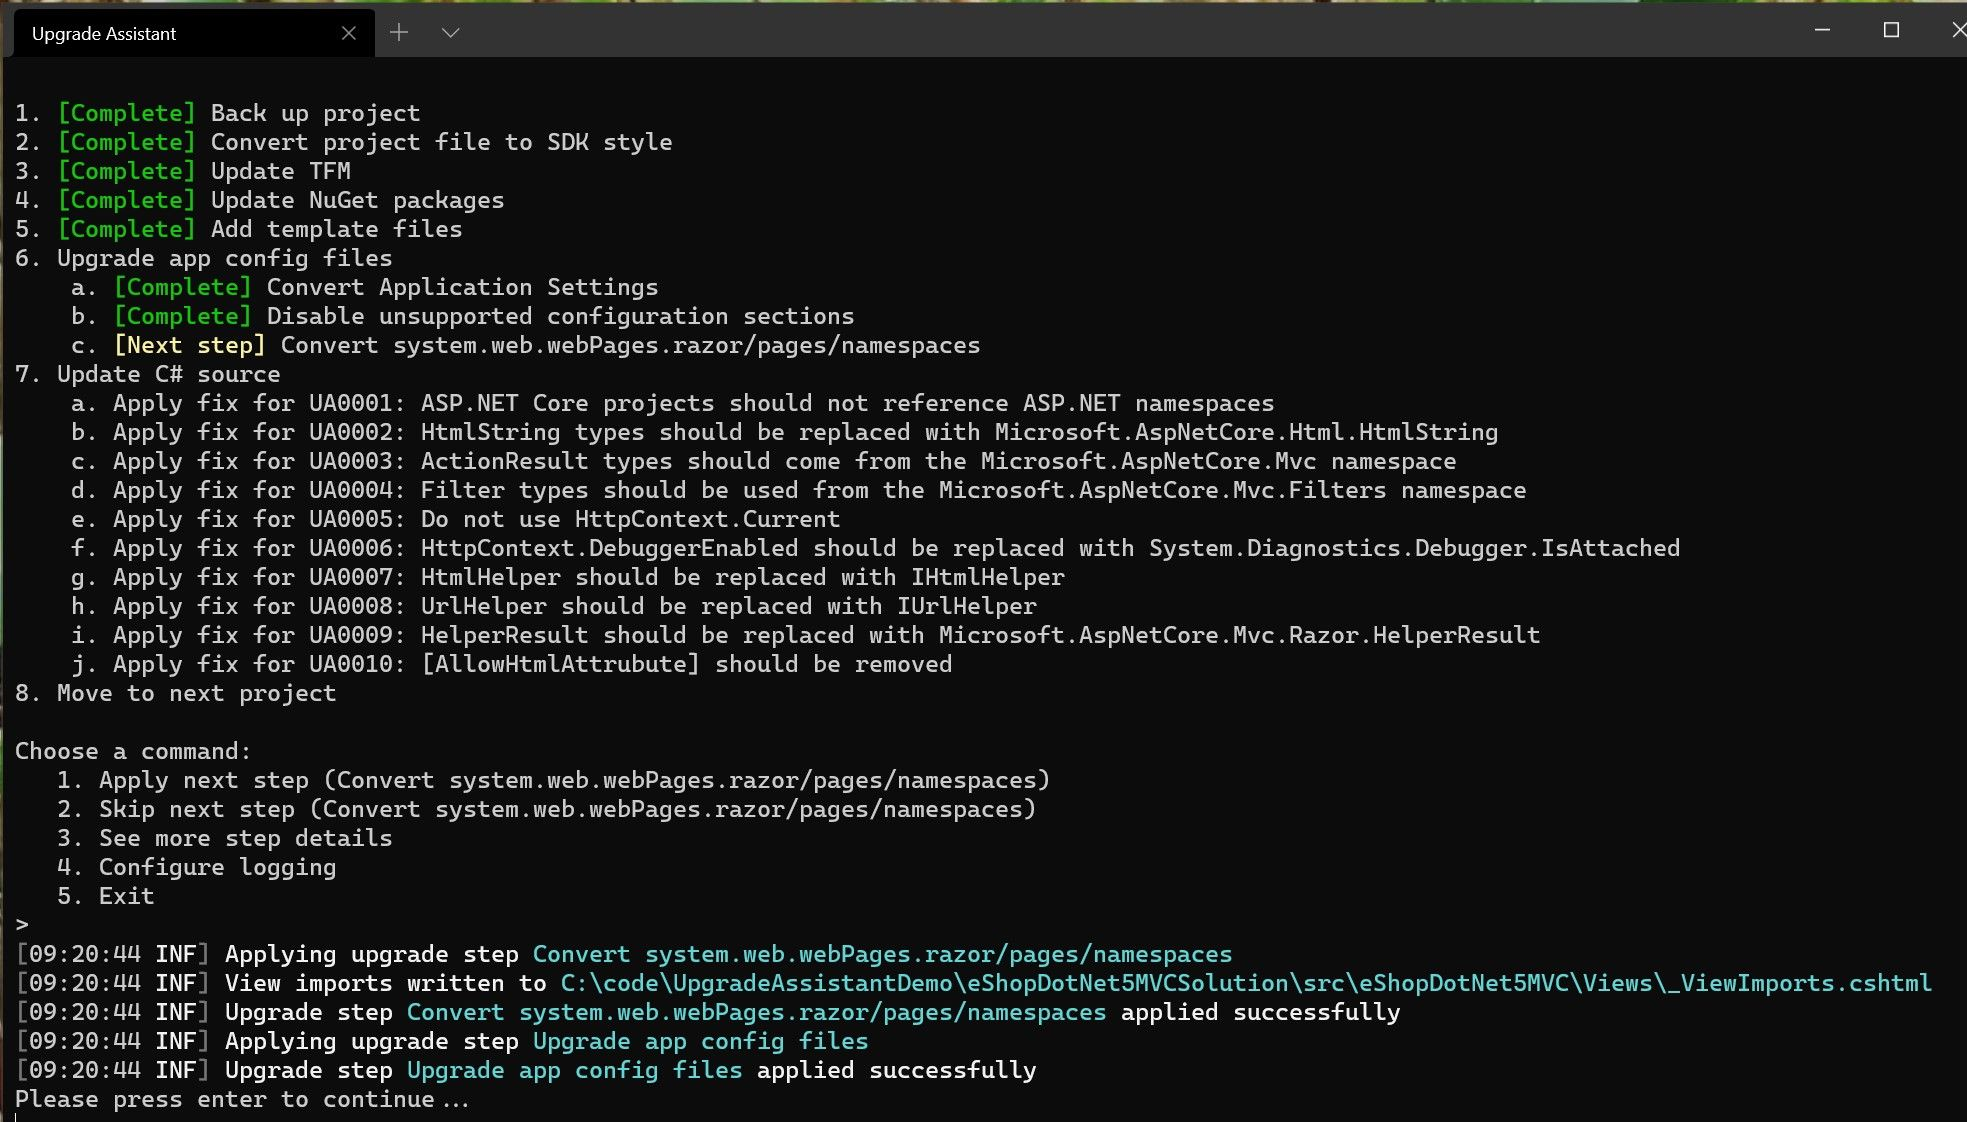 The .NET Upgrade Assistant migrates app config files